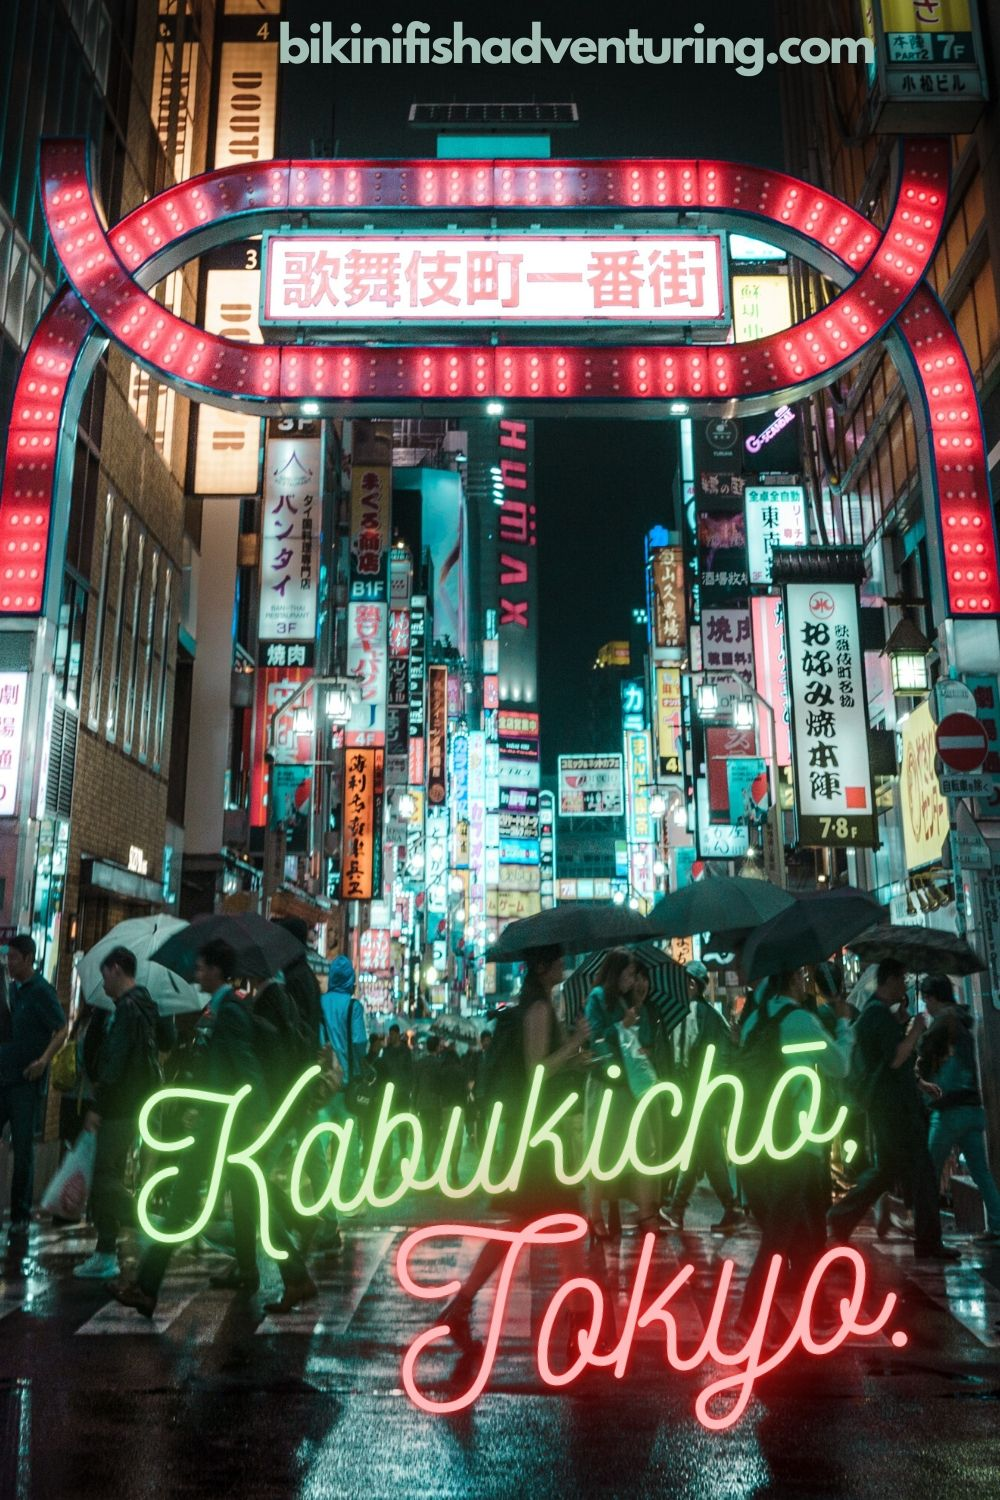 Experience the night-life in Kabukichō, Tokyo.